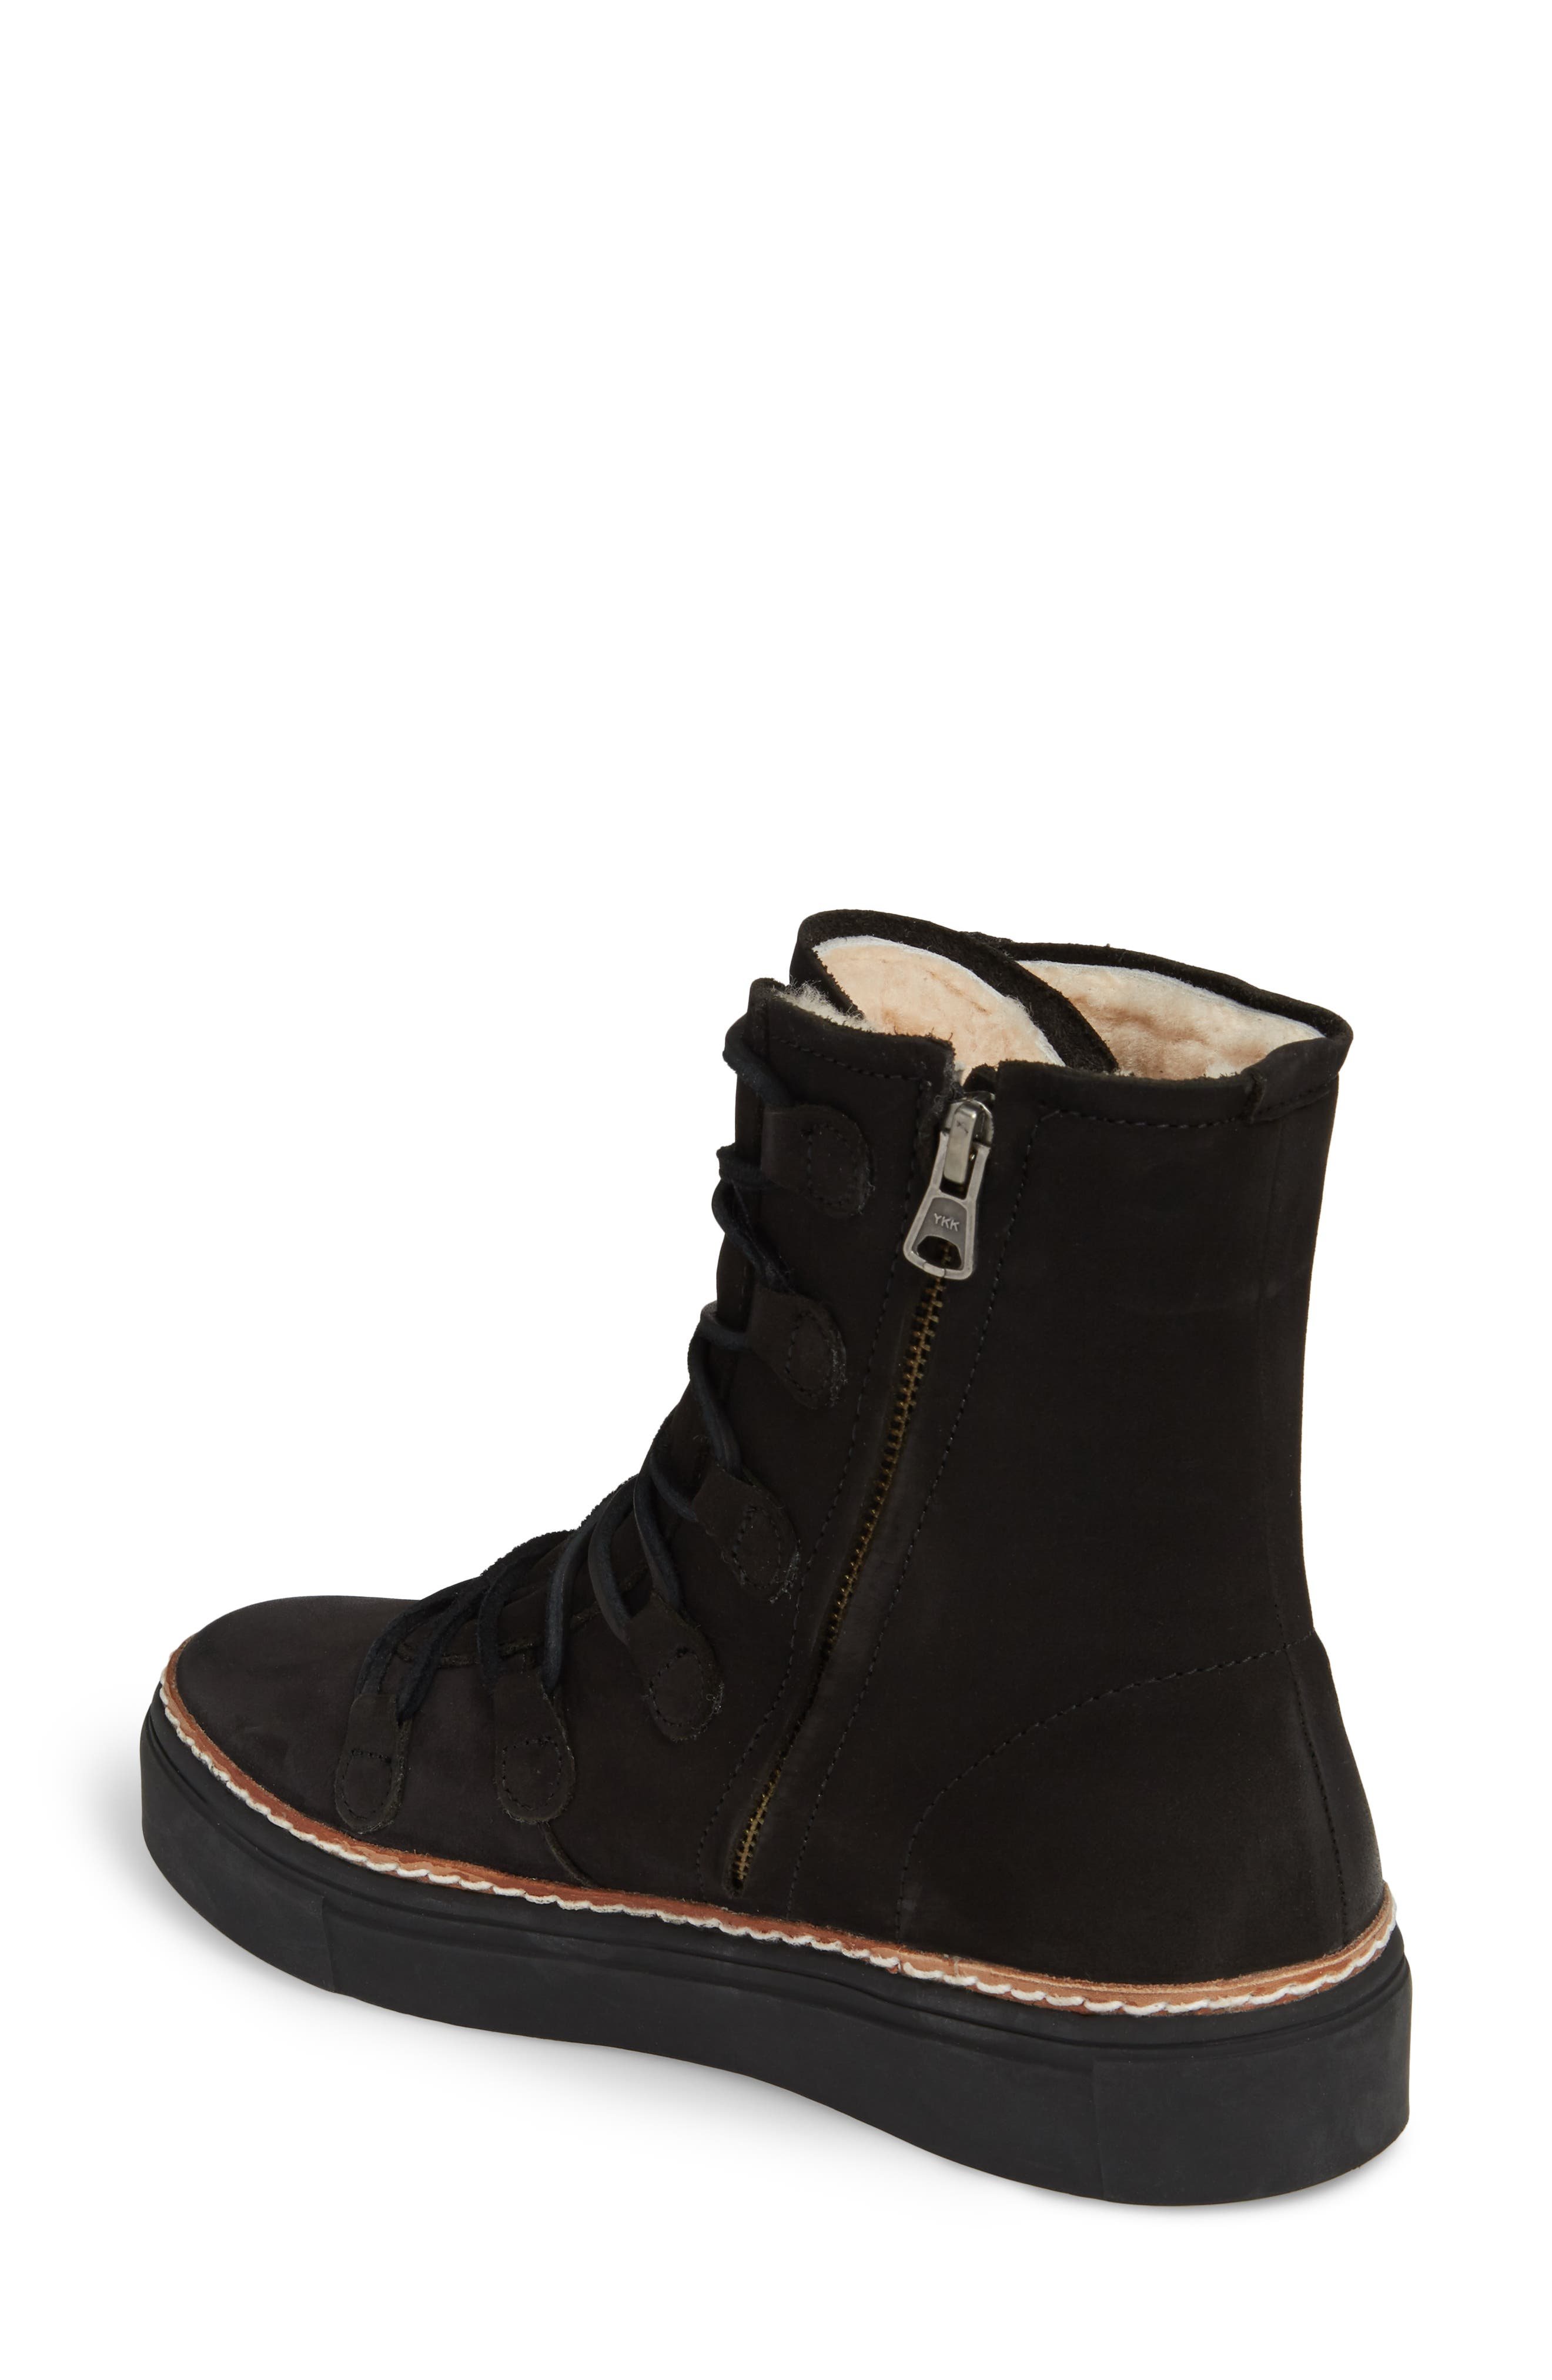 BLACKSTONE,                             OL26 Genuine Shearling Lined Lace-Up Bootie,                             Alternate thumbnail 2, color,                             BLACK NUBUCK LEATHER